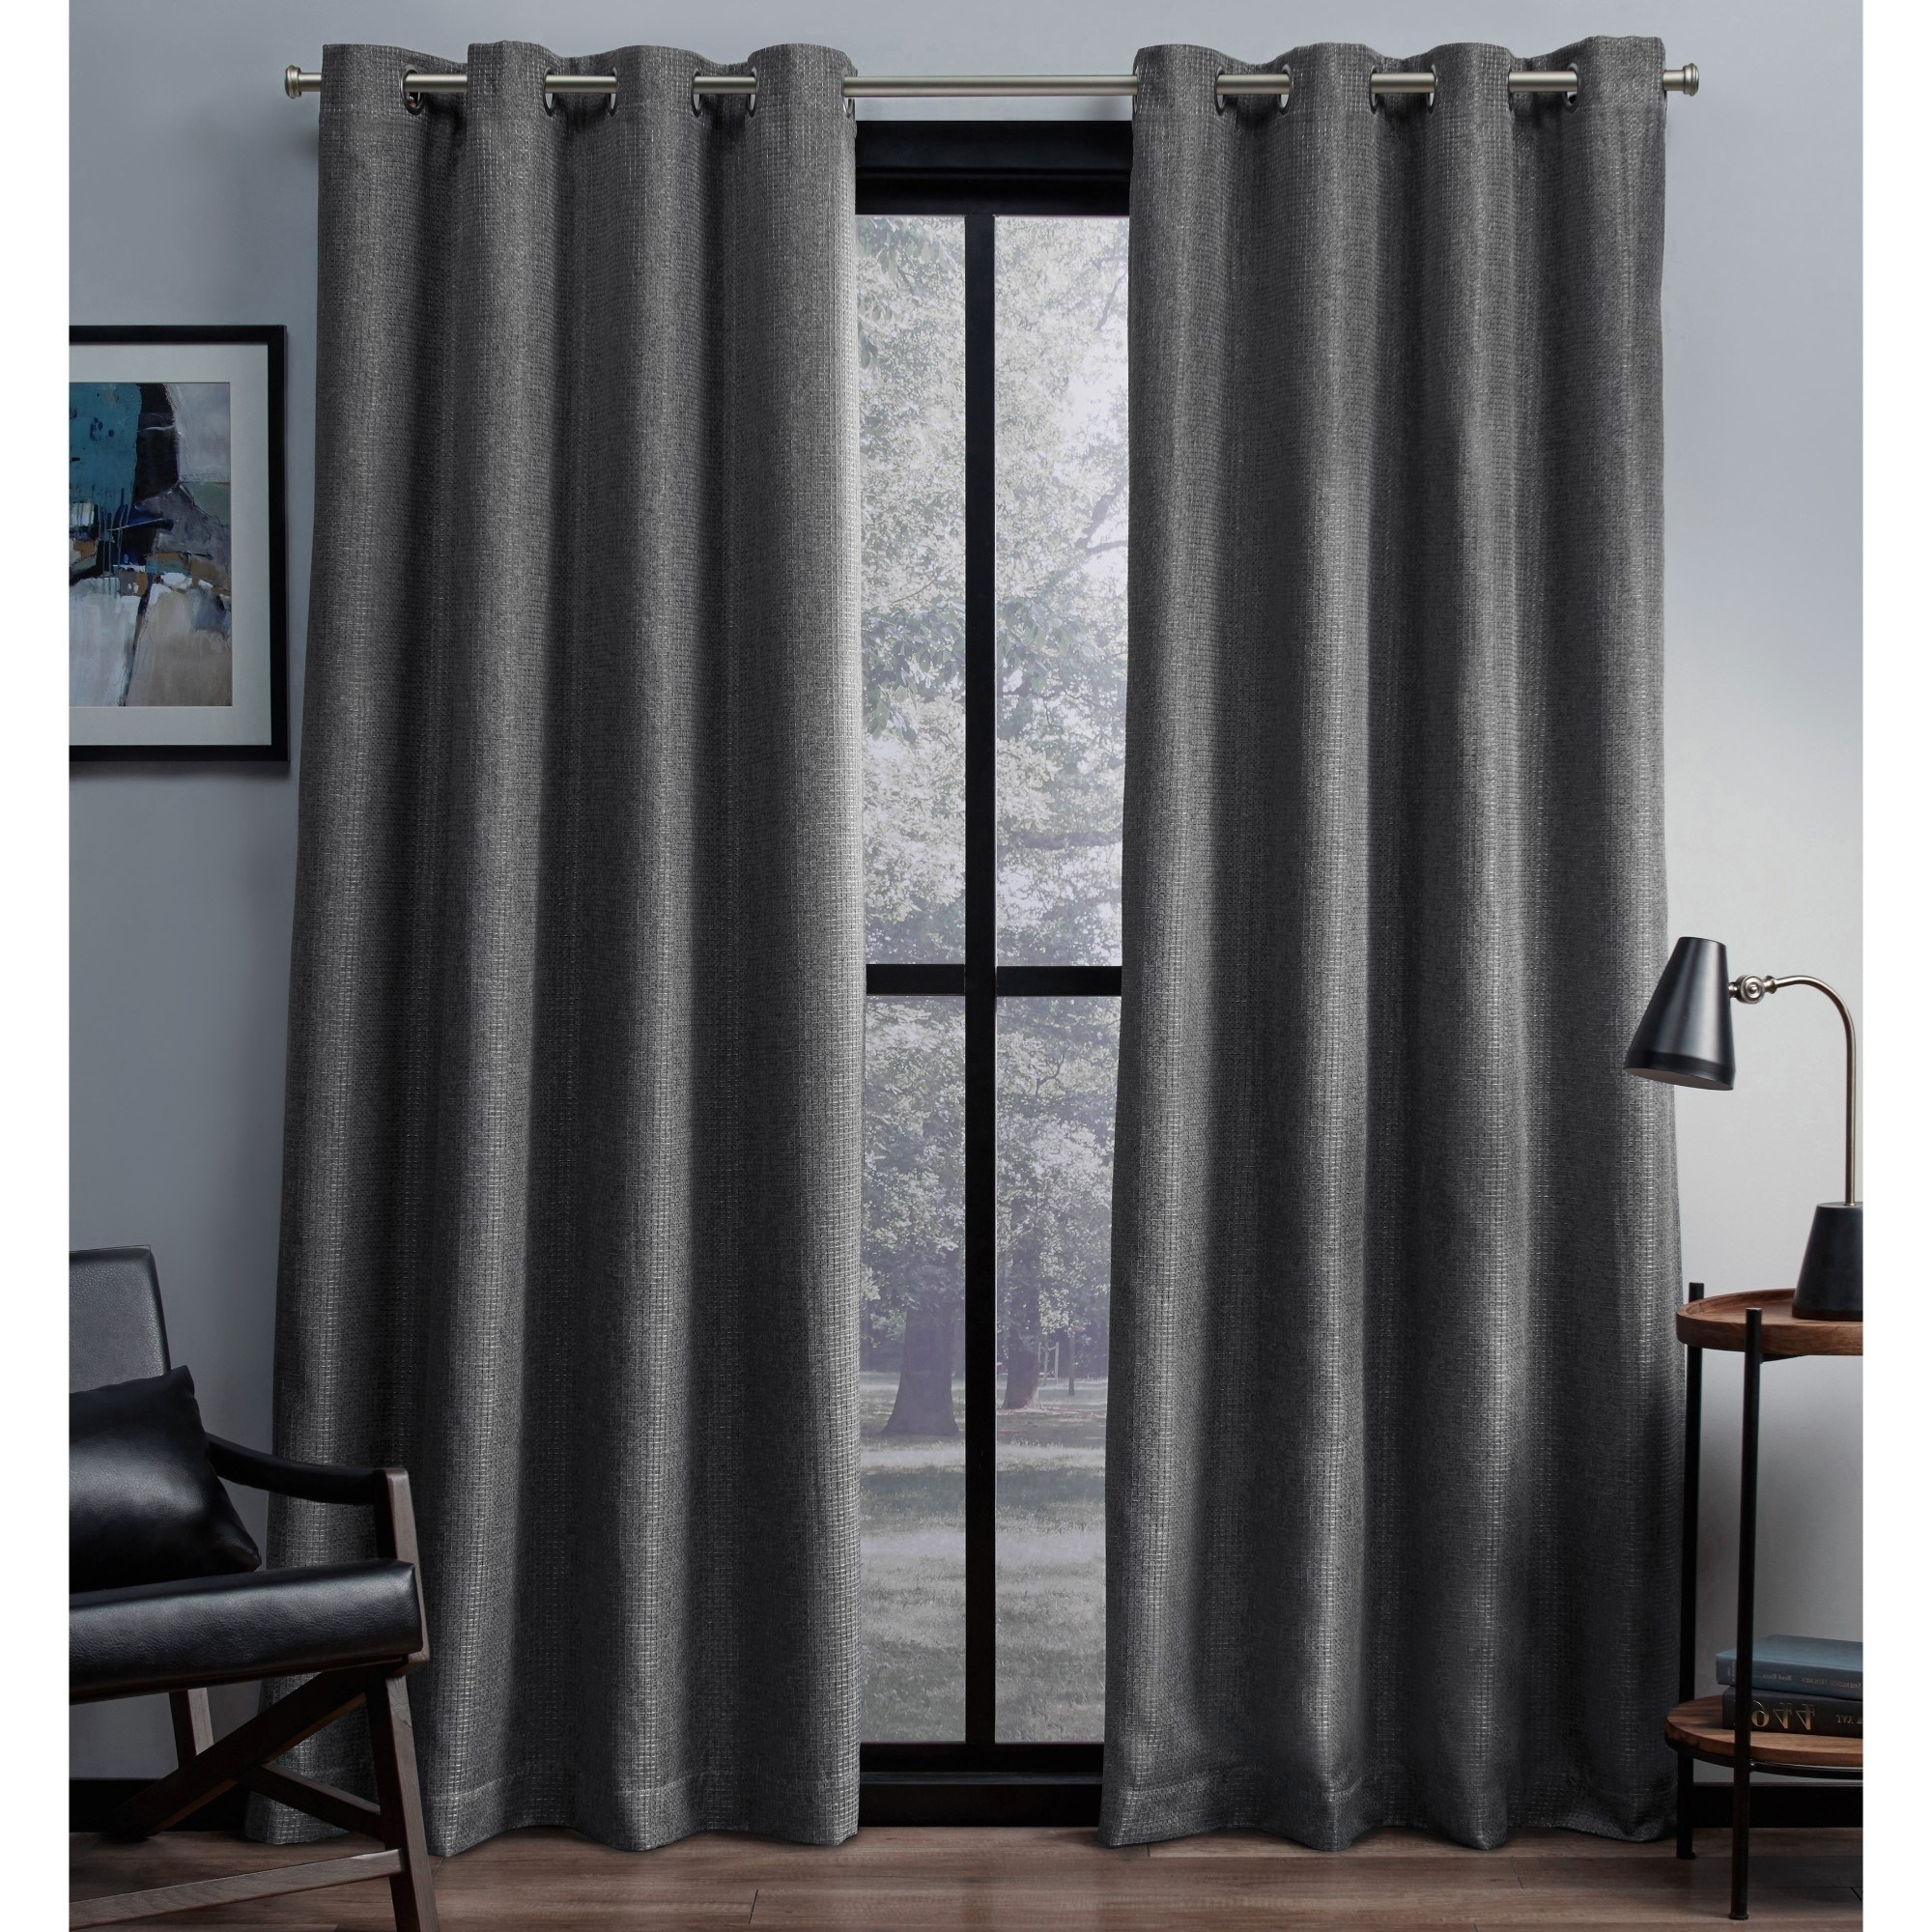 Thermal Woven Blackout Grommet Top Curtain Panel Pairs Pertaining To Most Current Ati Home Eglinton Woven Blackout Grommet Top Curtain Panel (View 15 of 20)